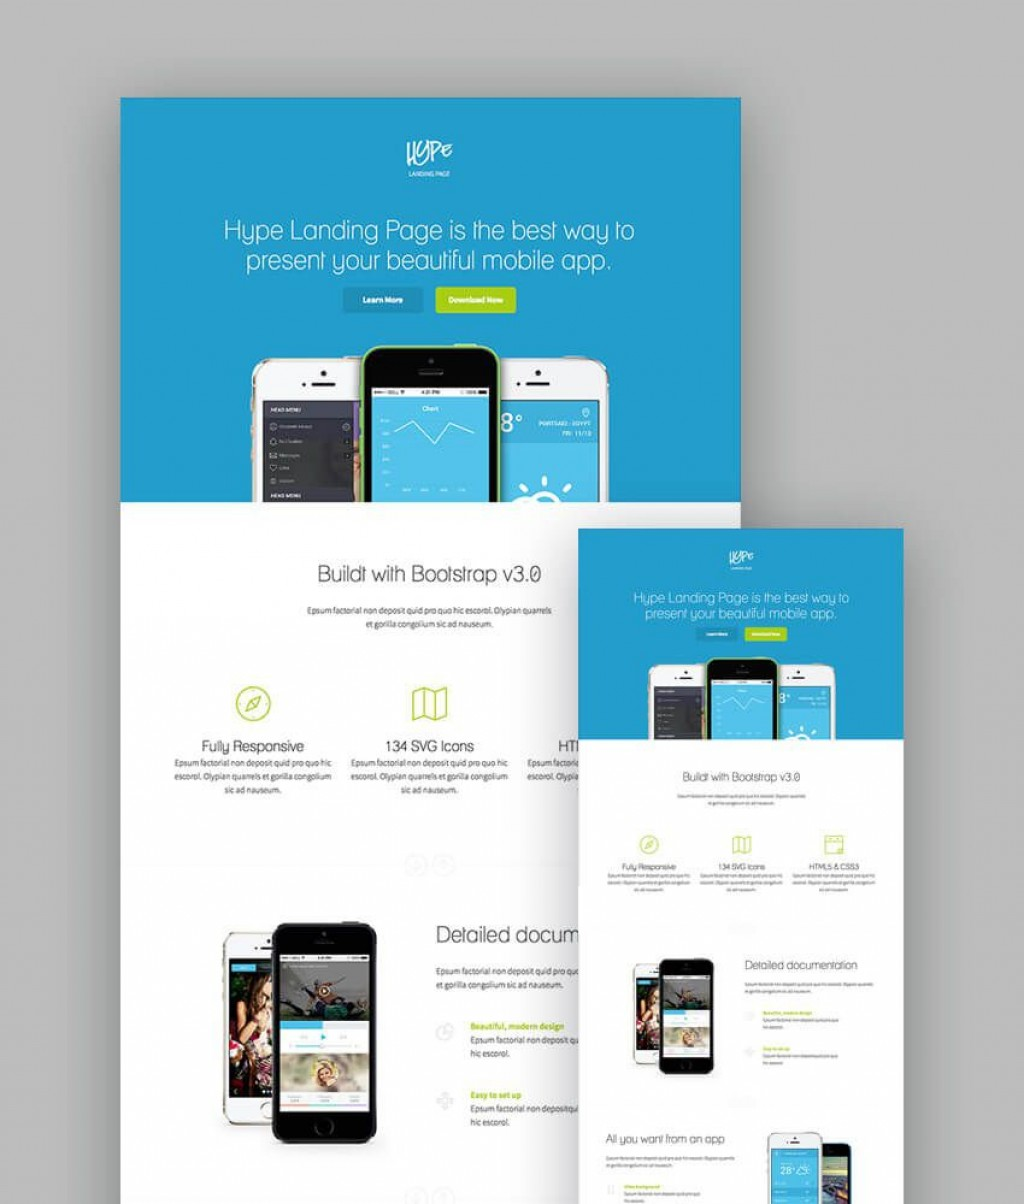 003 Stunning Responsive Landing Page Template High Definition  Templates Marketo Free Pardot Html5 DownloadLarge